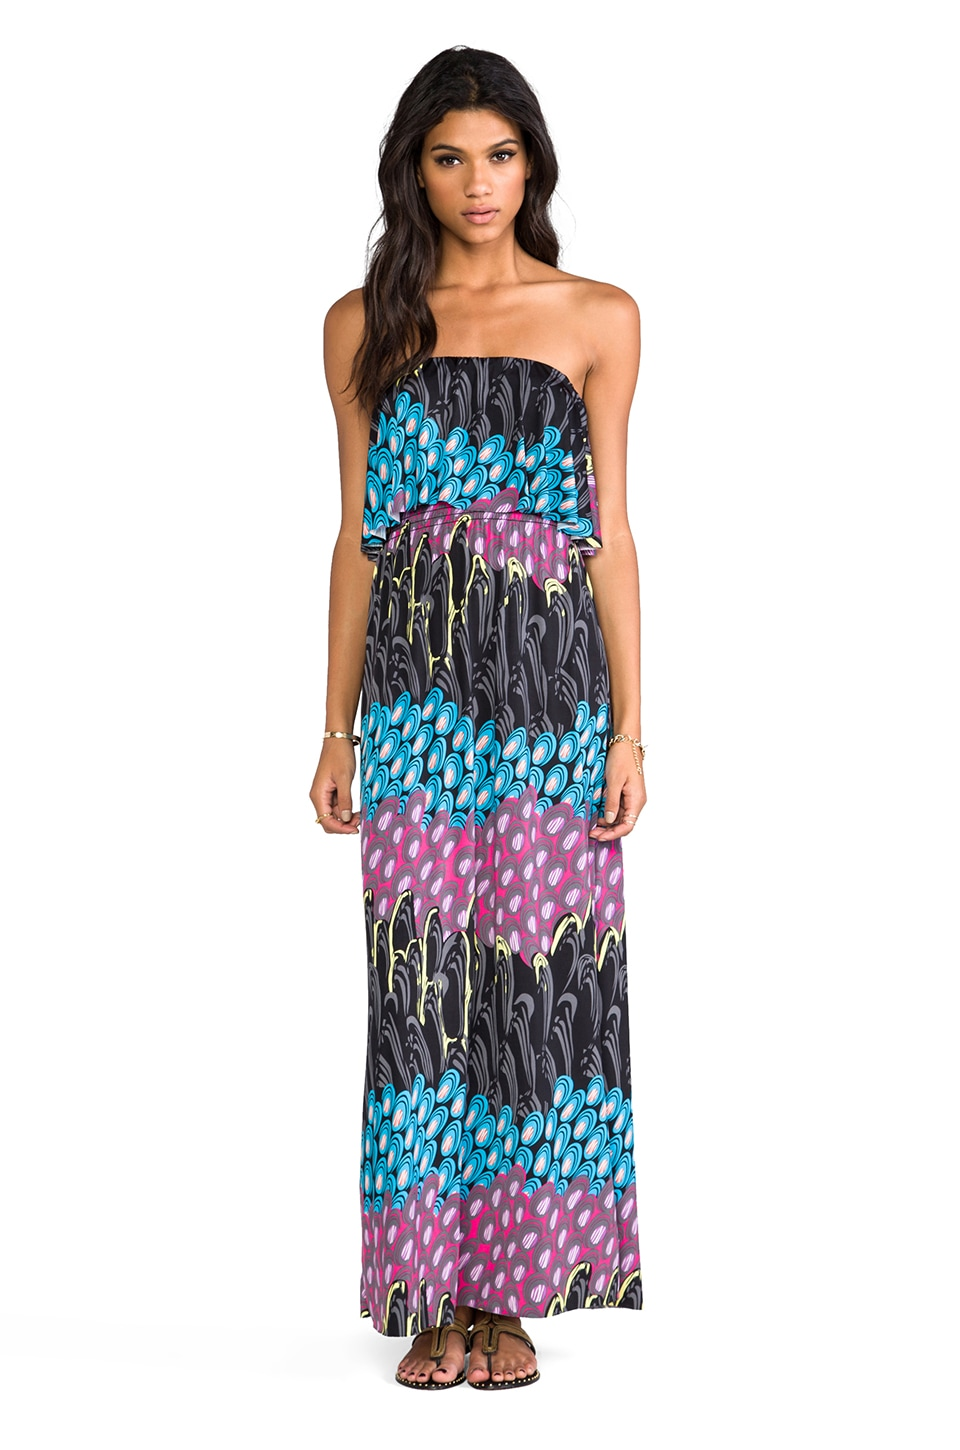 T-Bags LosAngeles Strapless Maxi Dress in Electric Peacock